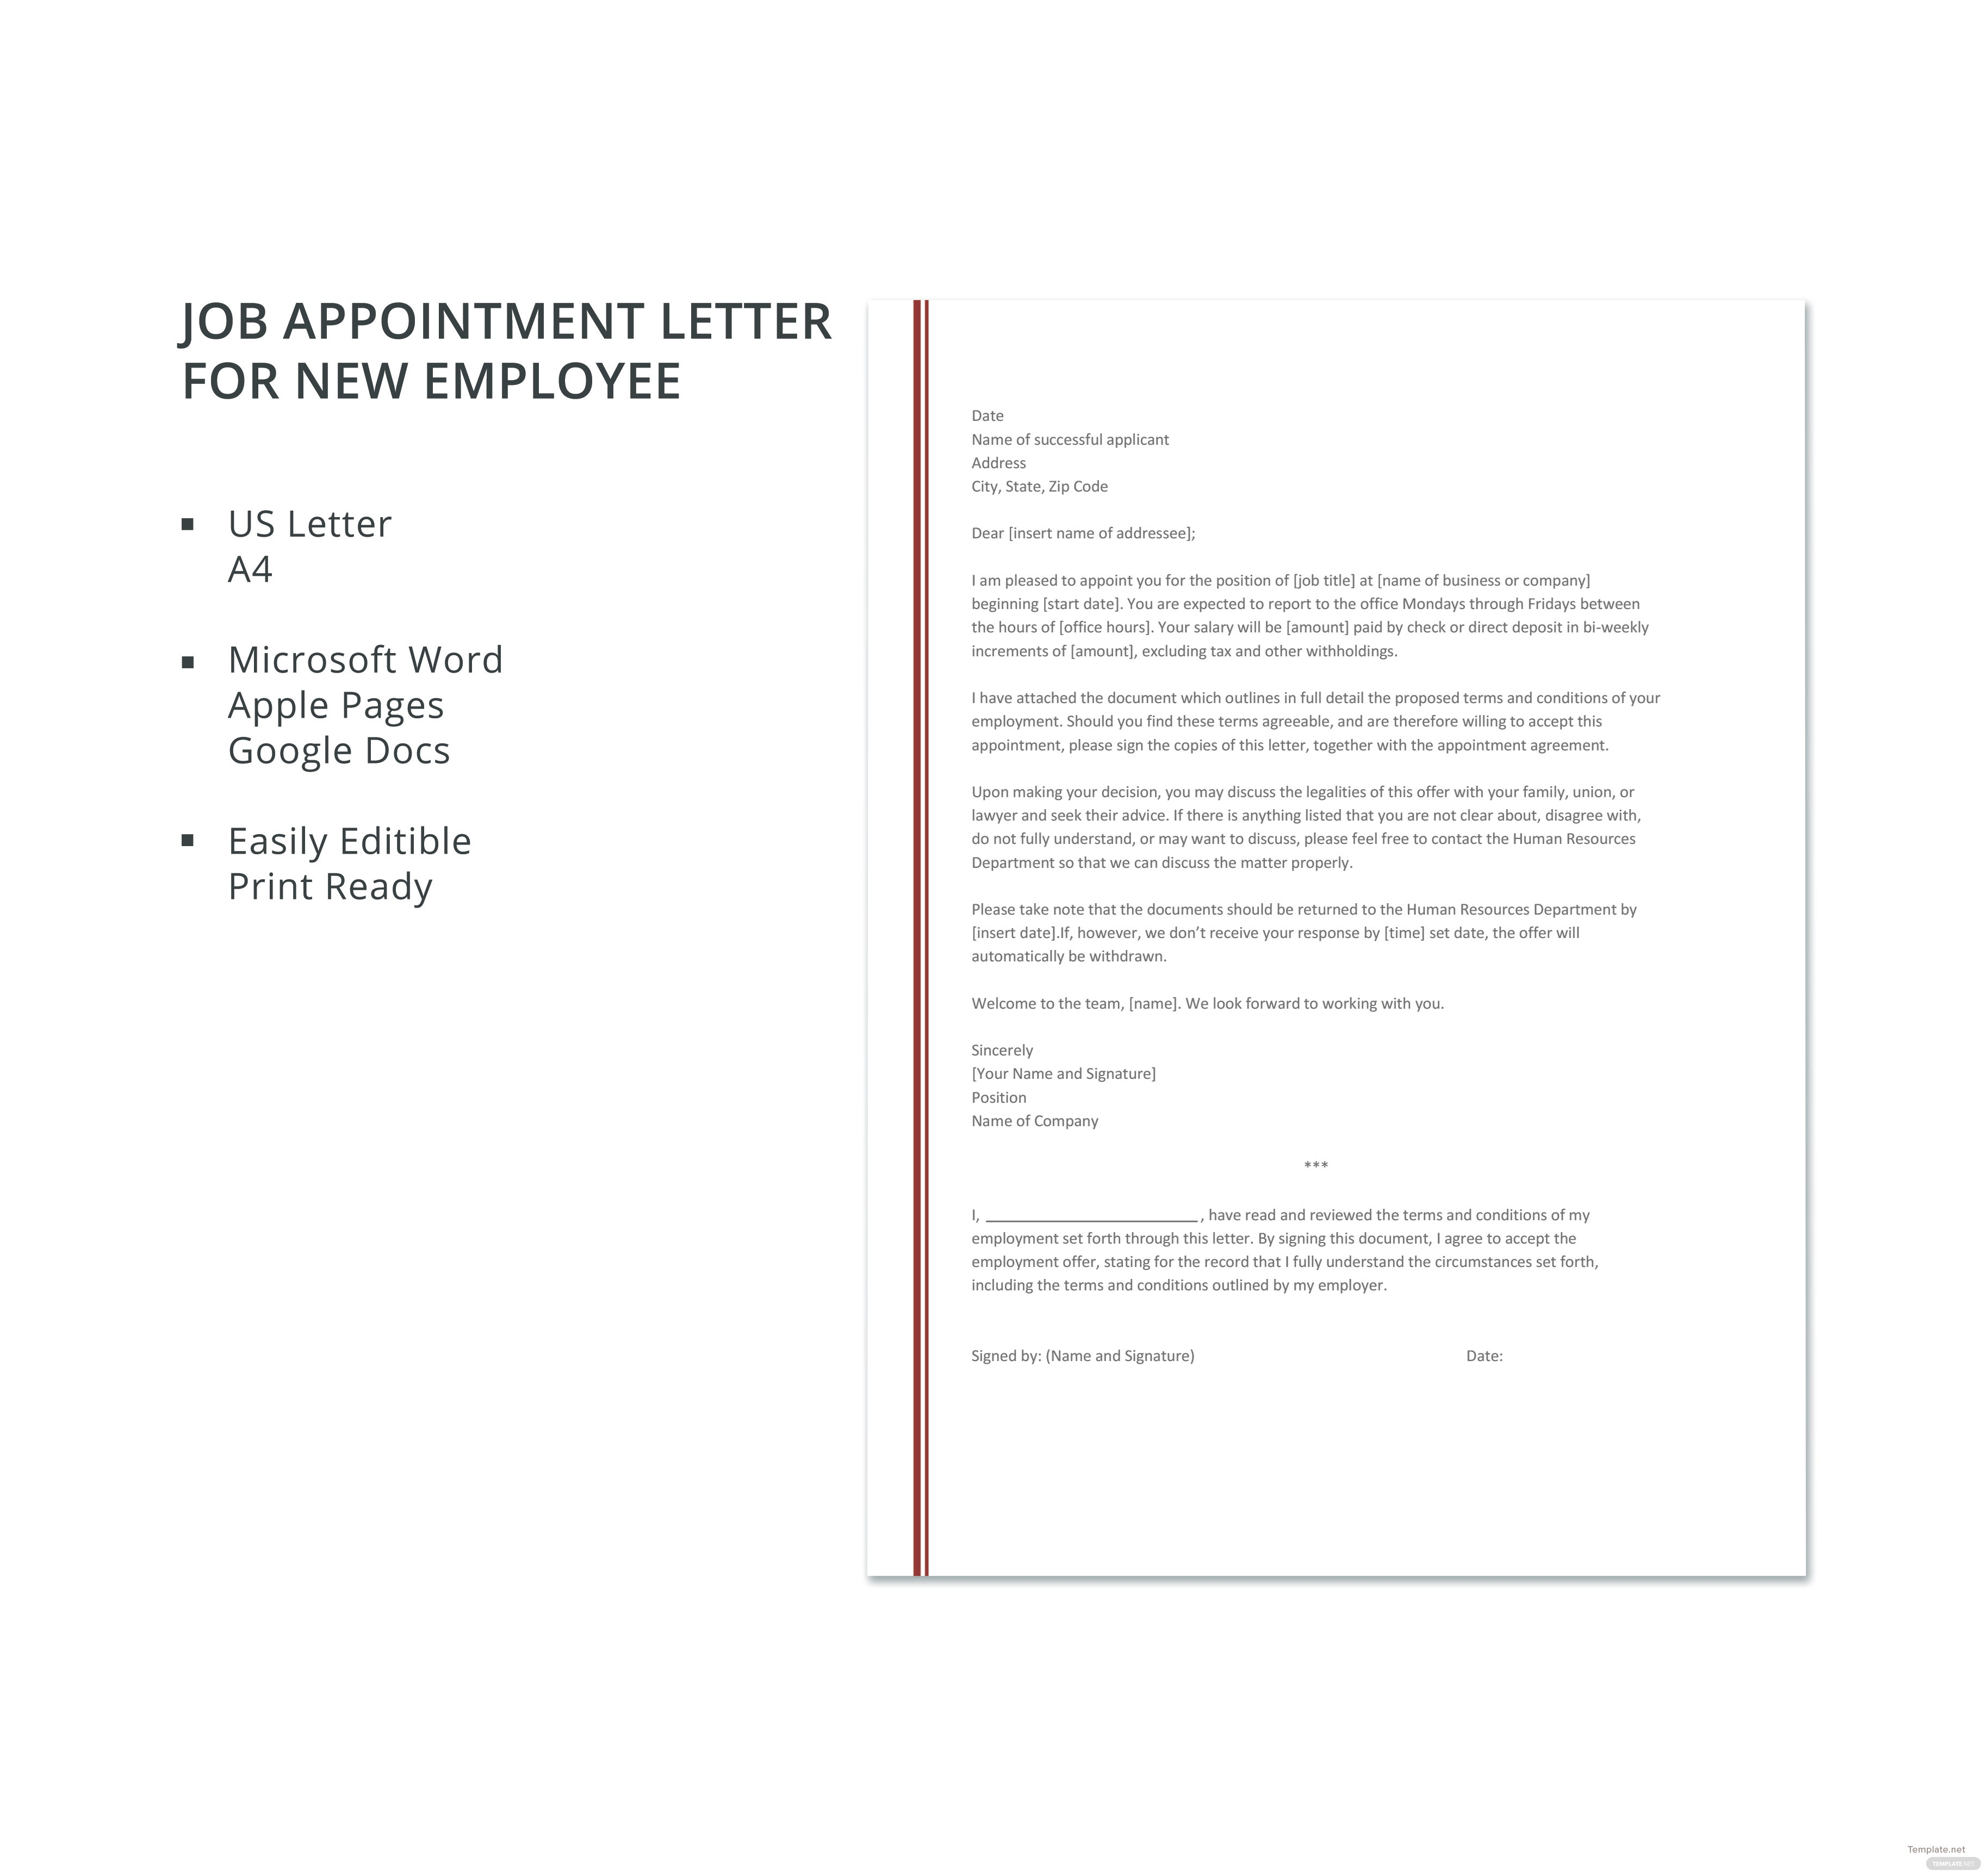 Job appointment letter template for new employee in microsoft word job appointment letter template for new employee thecheapjerseys Image collections